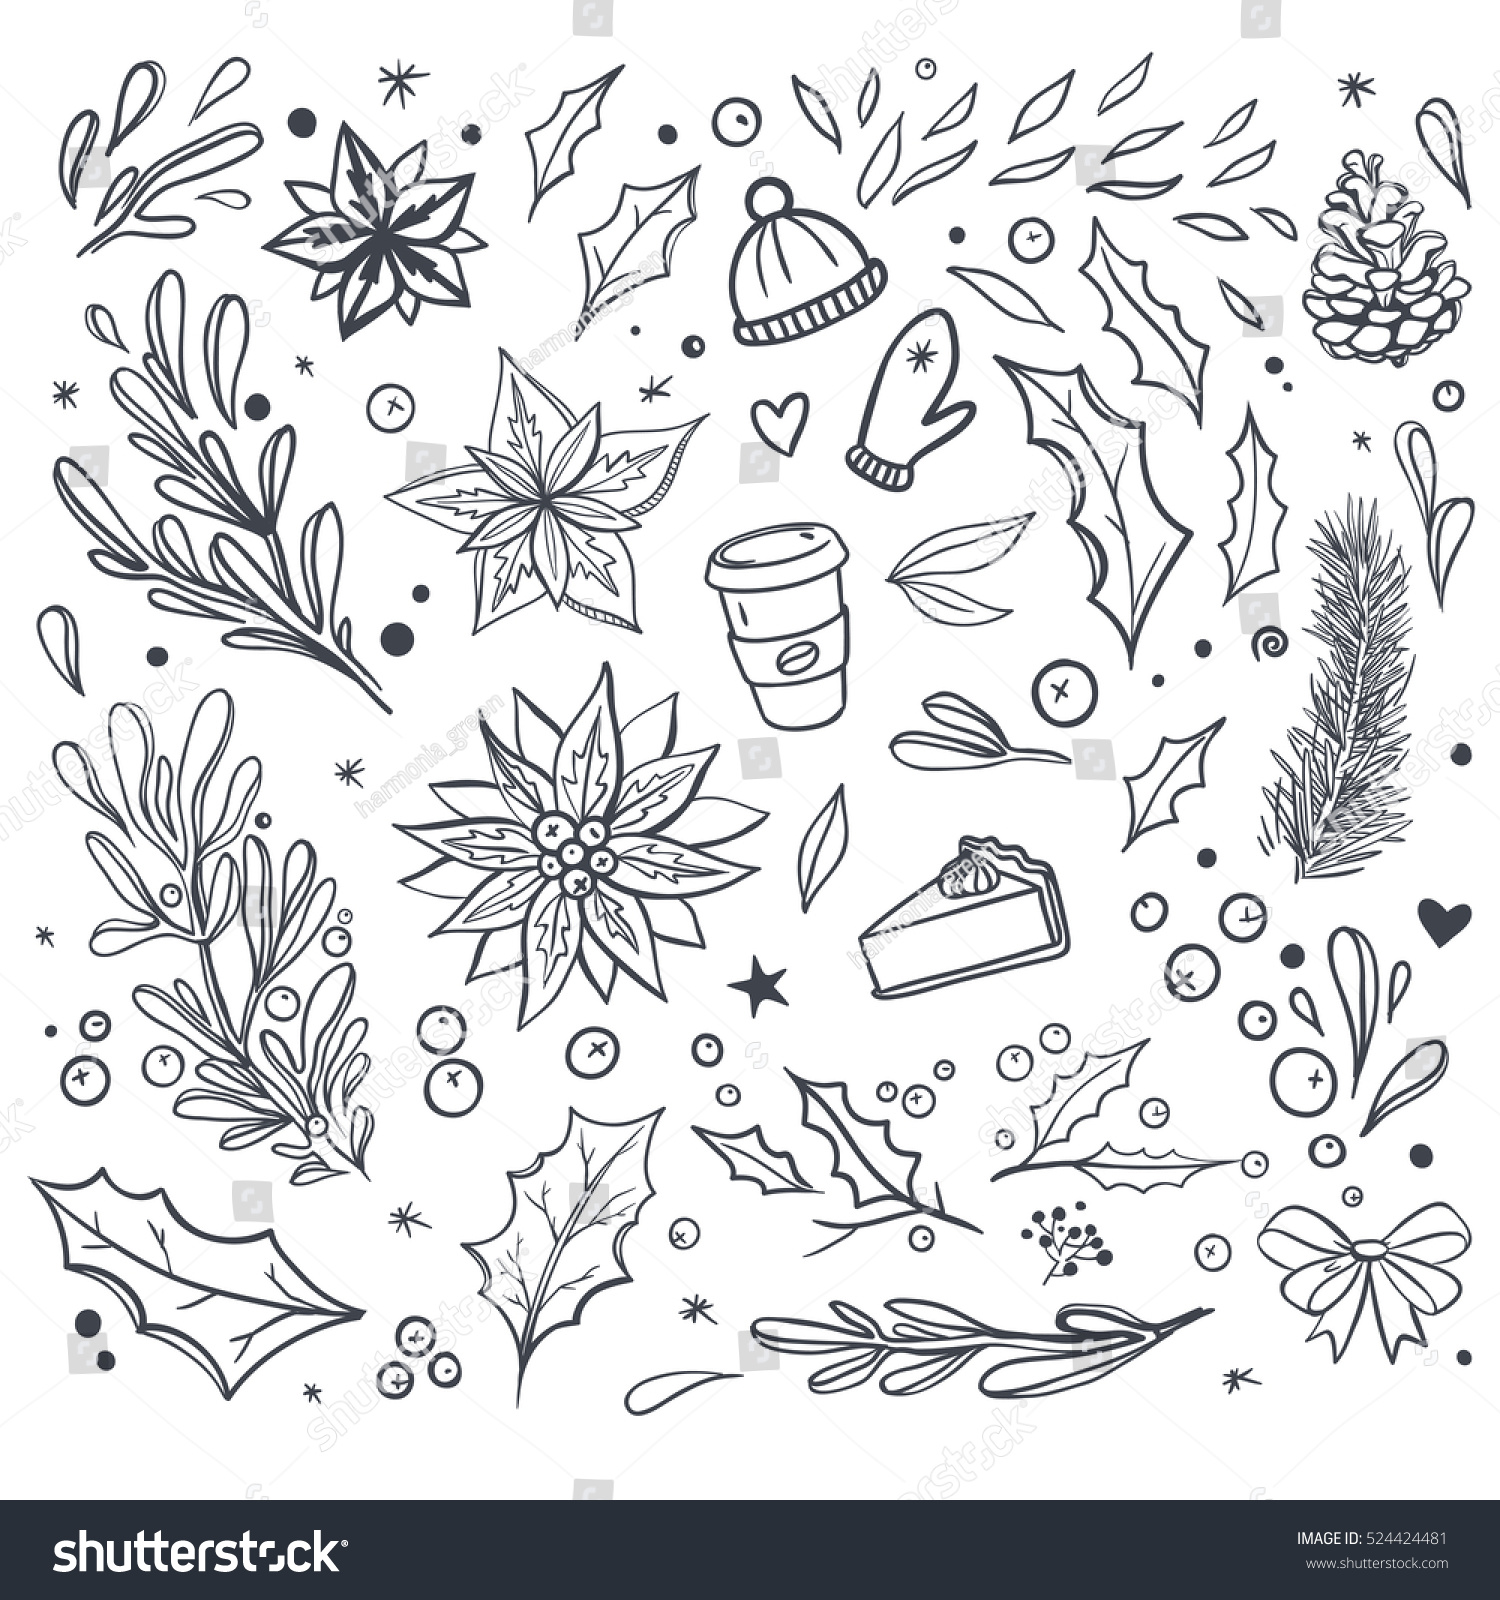 Set Christmas Vector Doodles Isolated On Stock Vector (Royalty Free ...